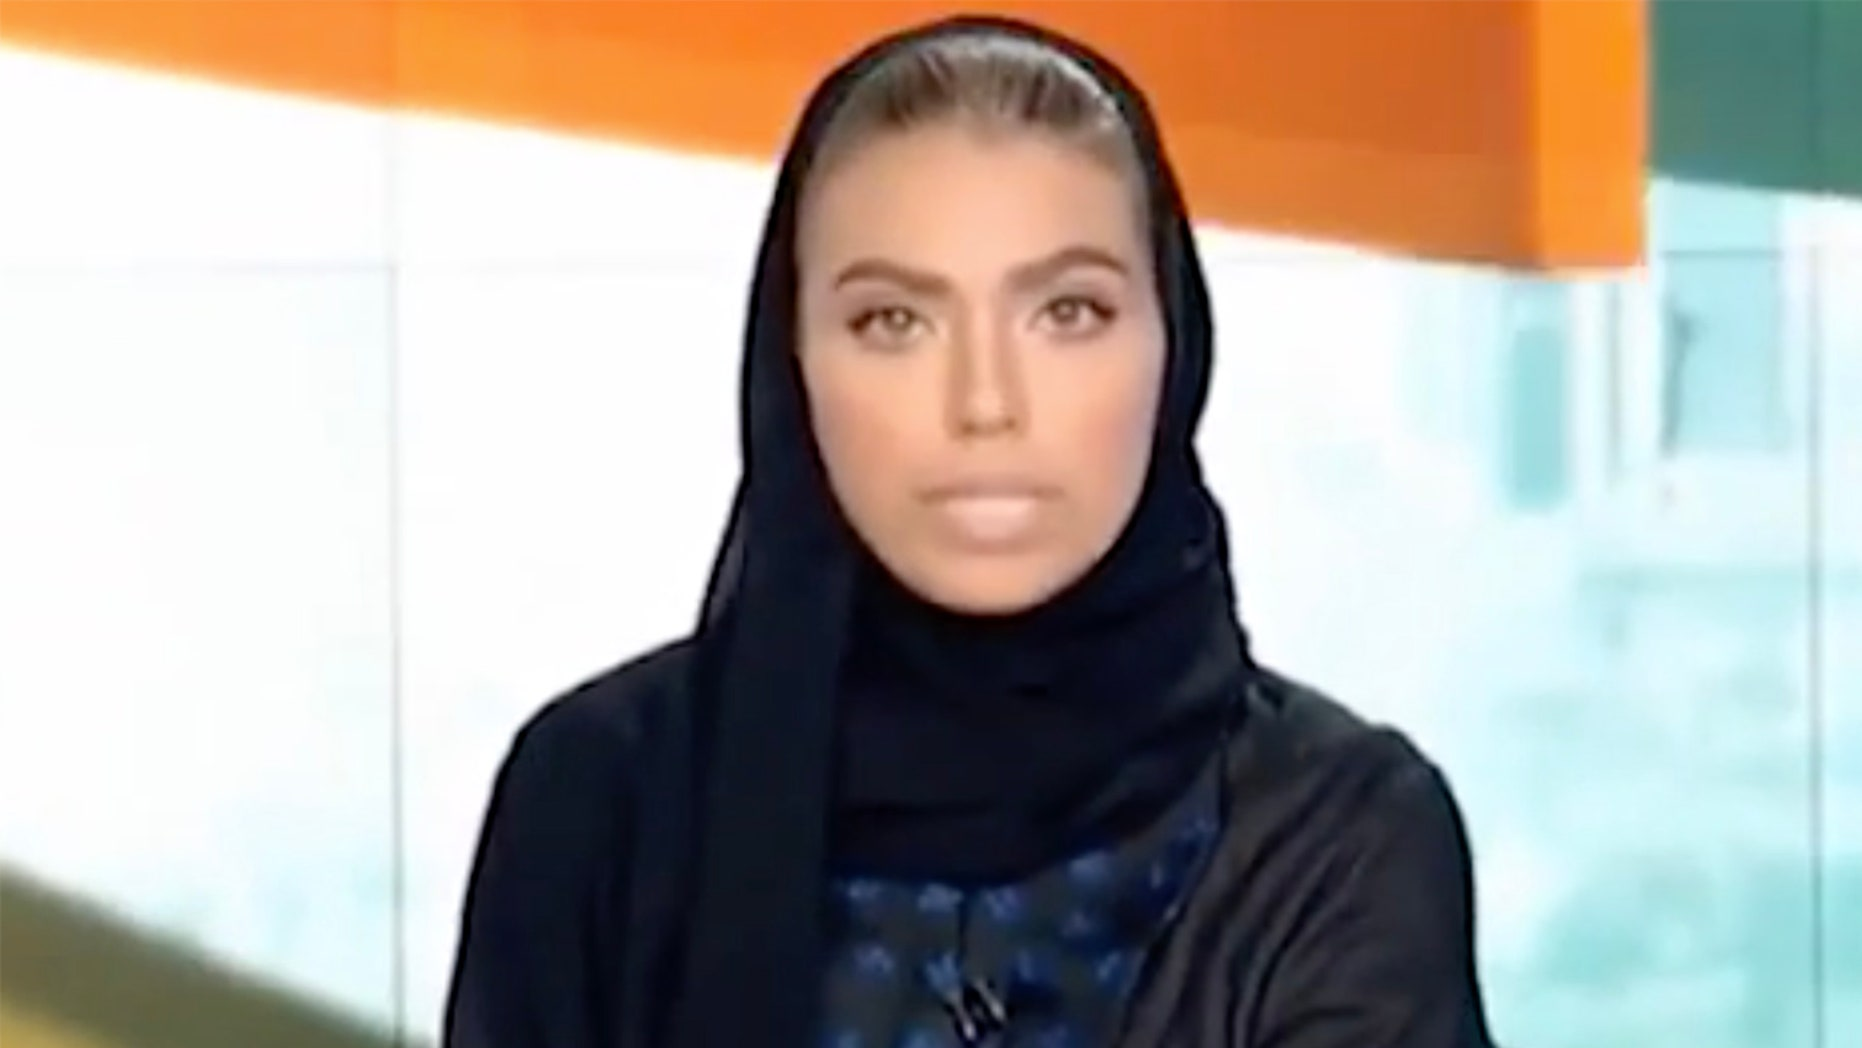 Weam Al Dakheel has become the first woman to deliver an evening newscast on Saudi state-owned television.